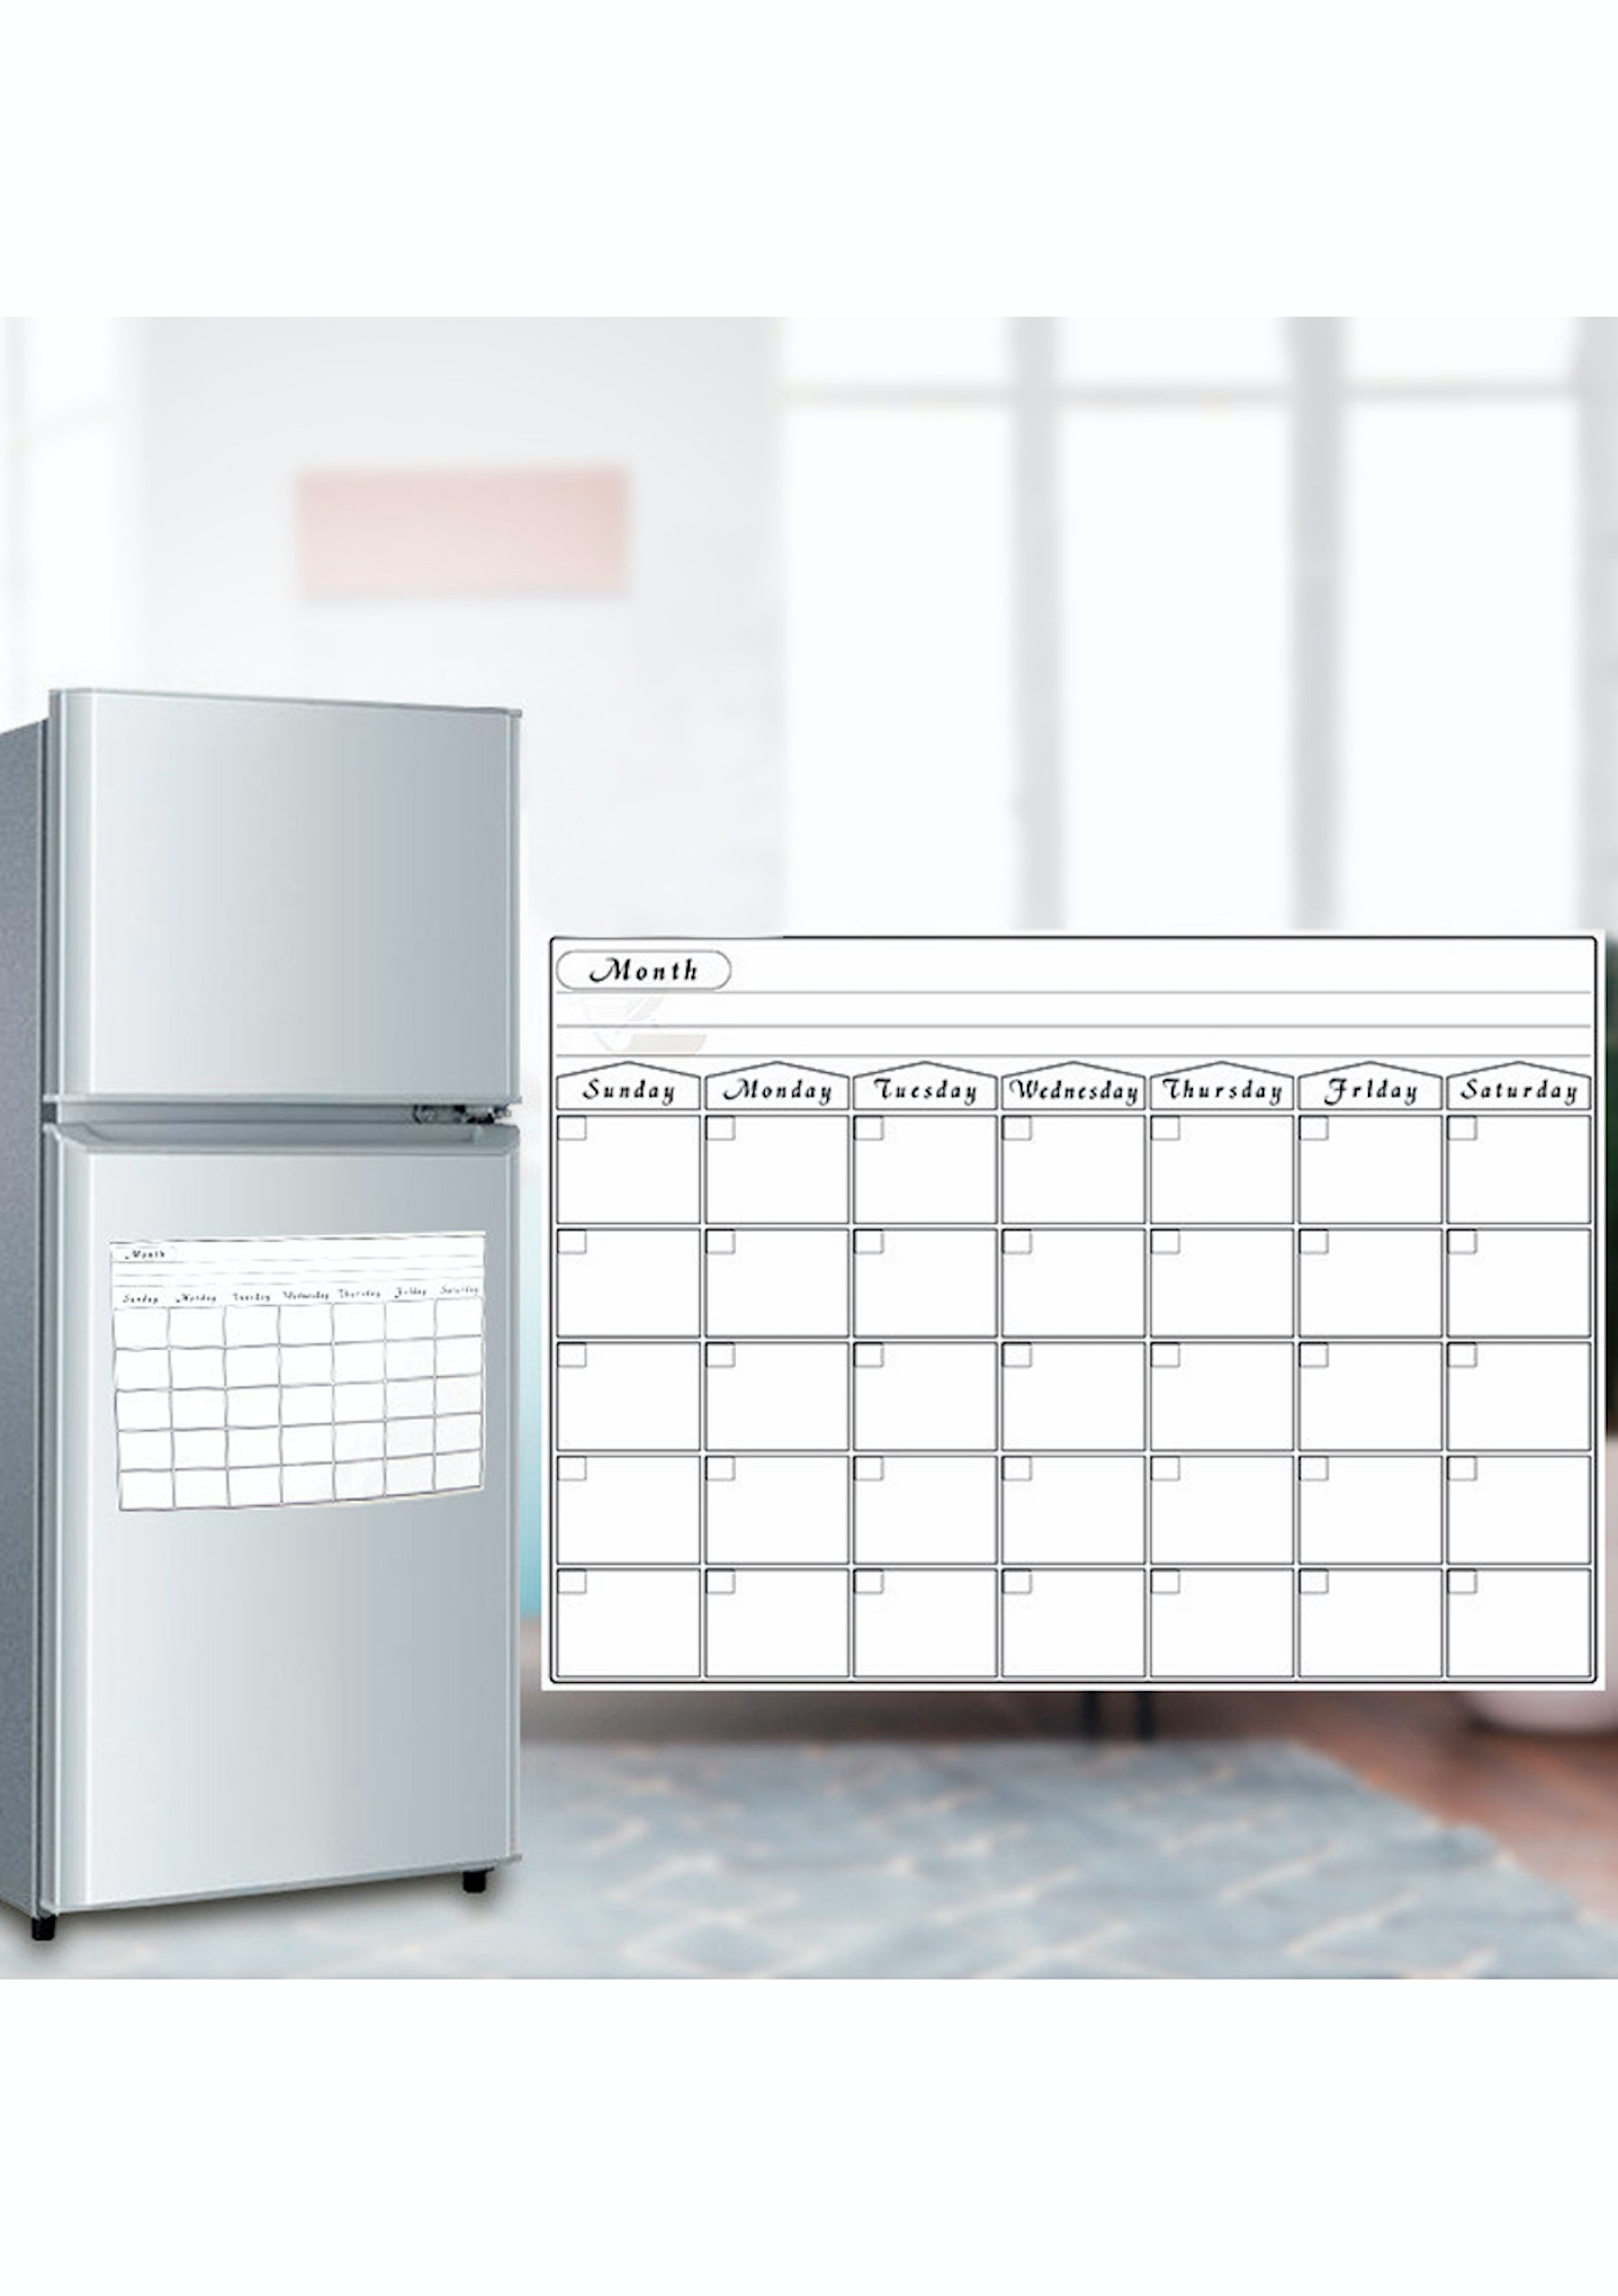 Magnetic Dry Erase Calendar Monthly Board For Fridge 10 At 10pm